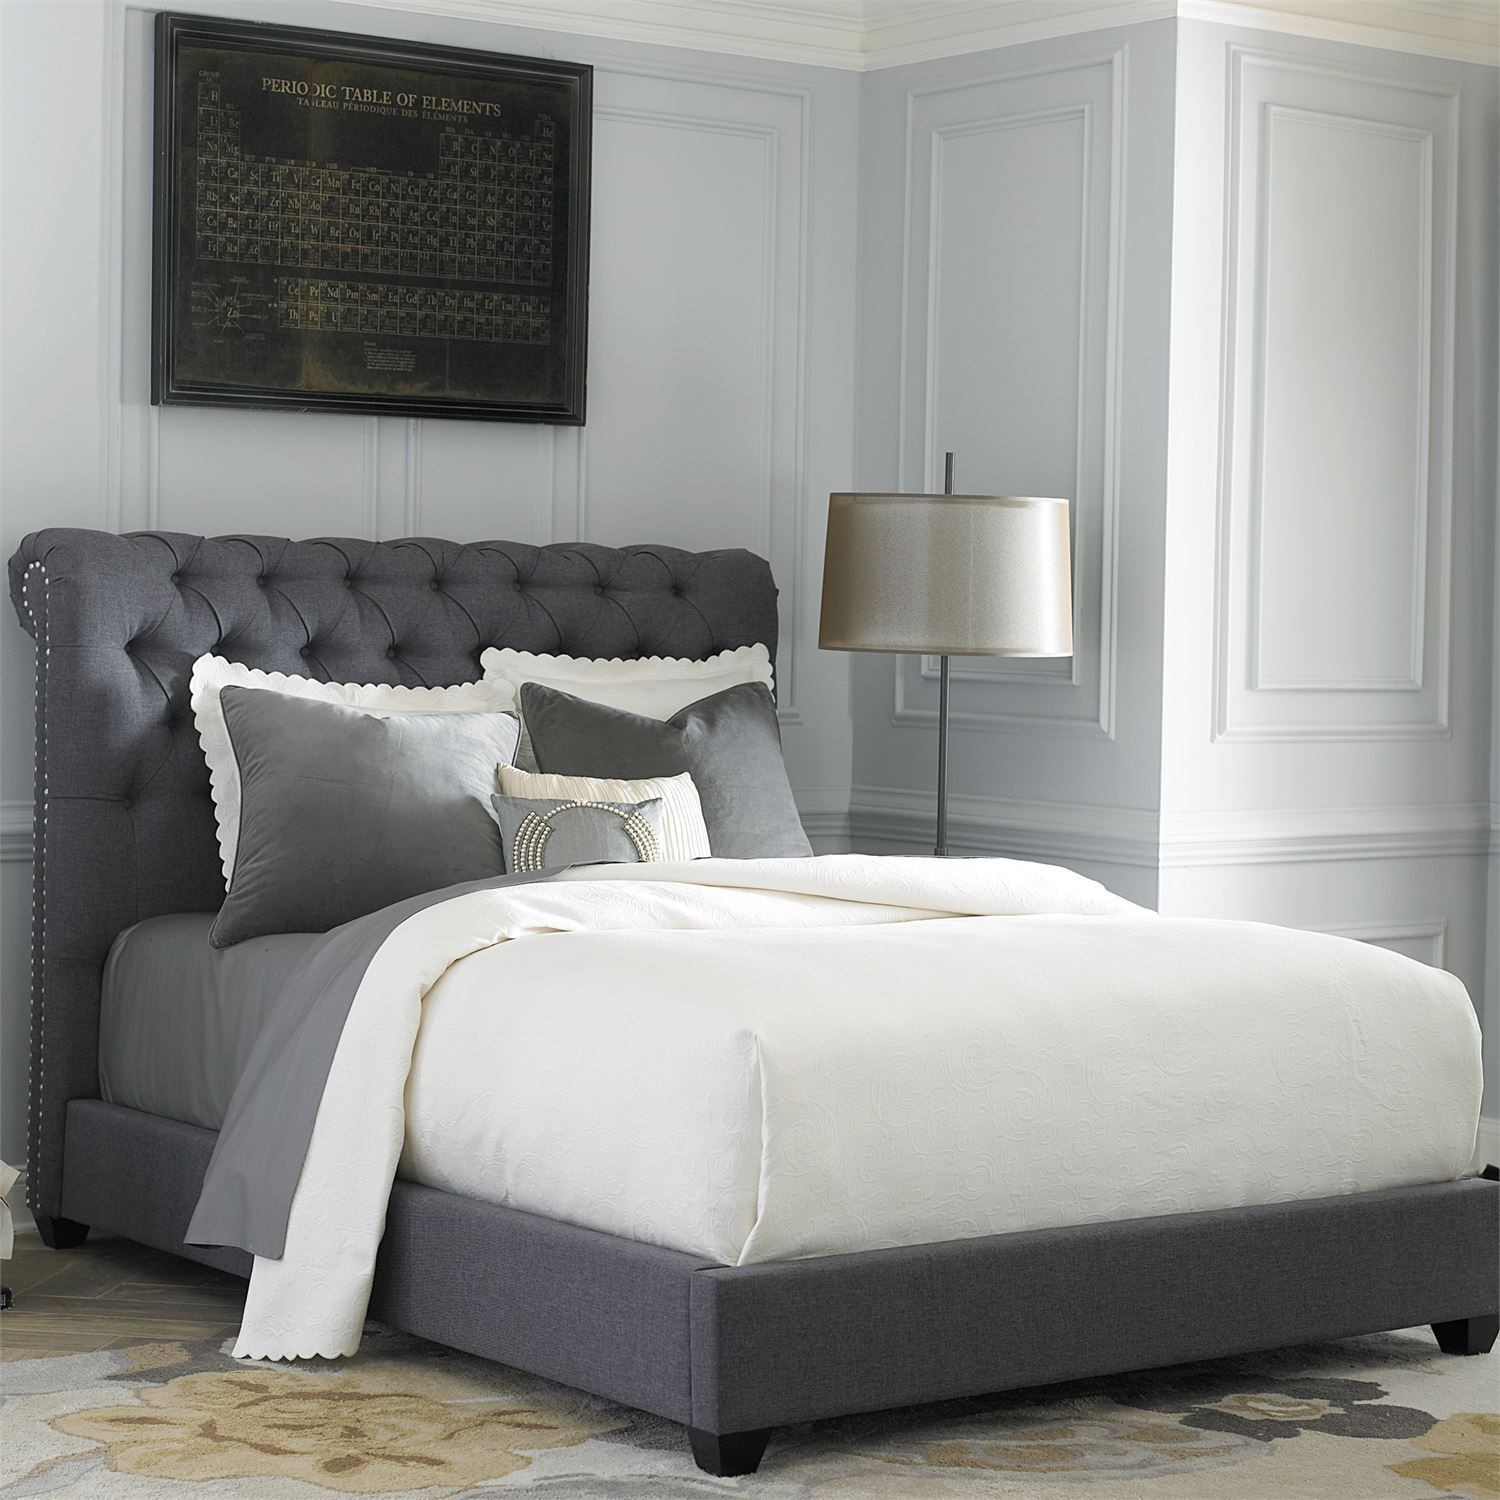 Dark Gray Upholstered King Sleigh Bed From Liberty (250